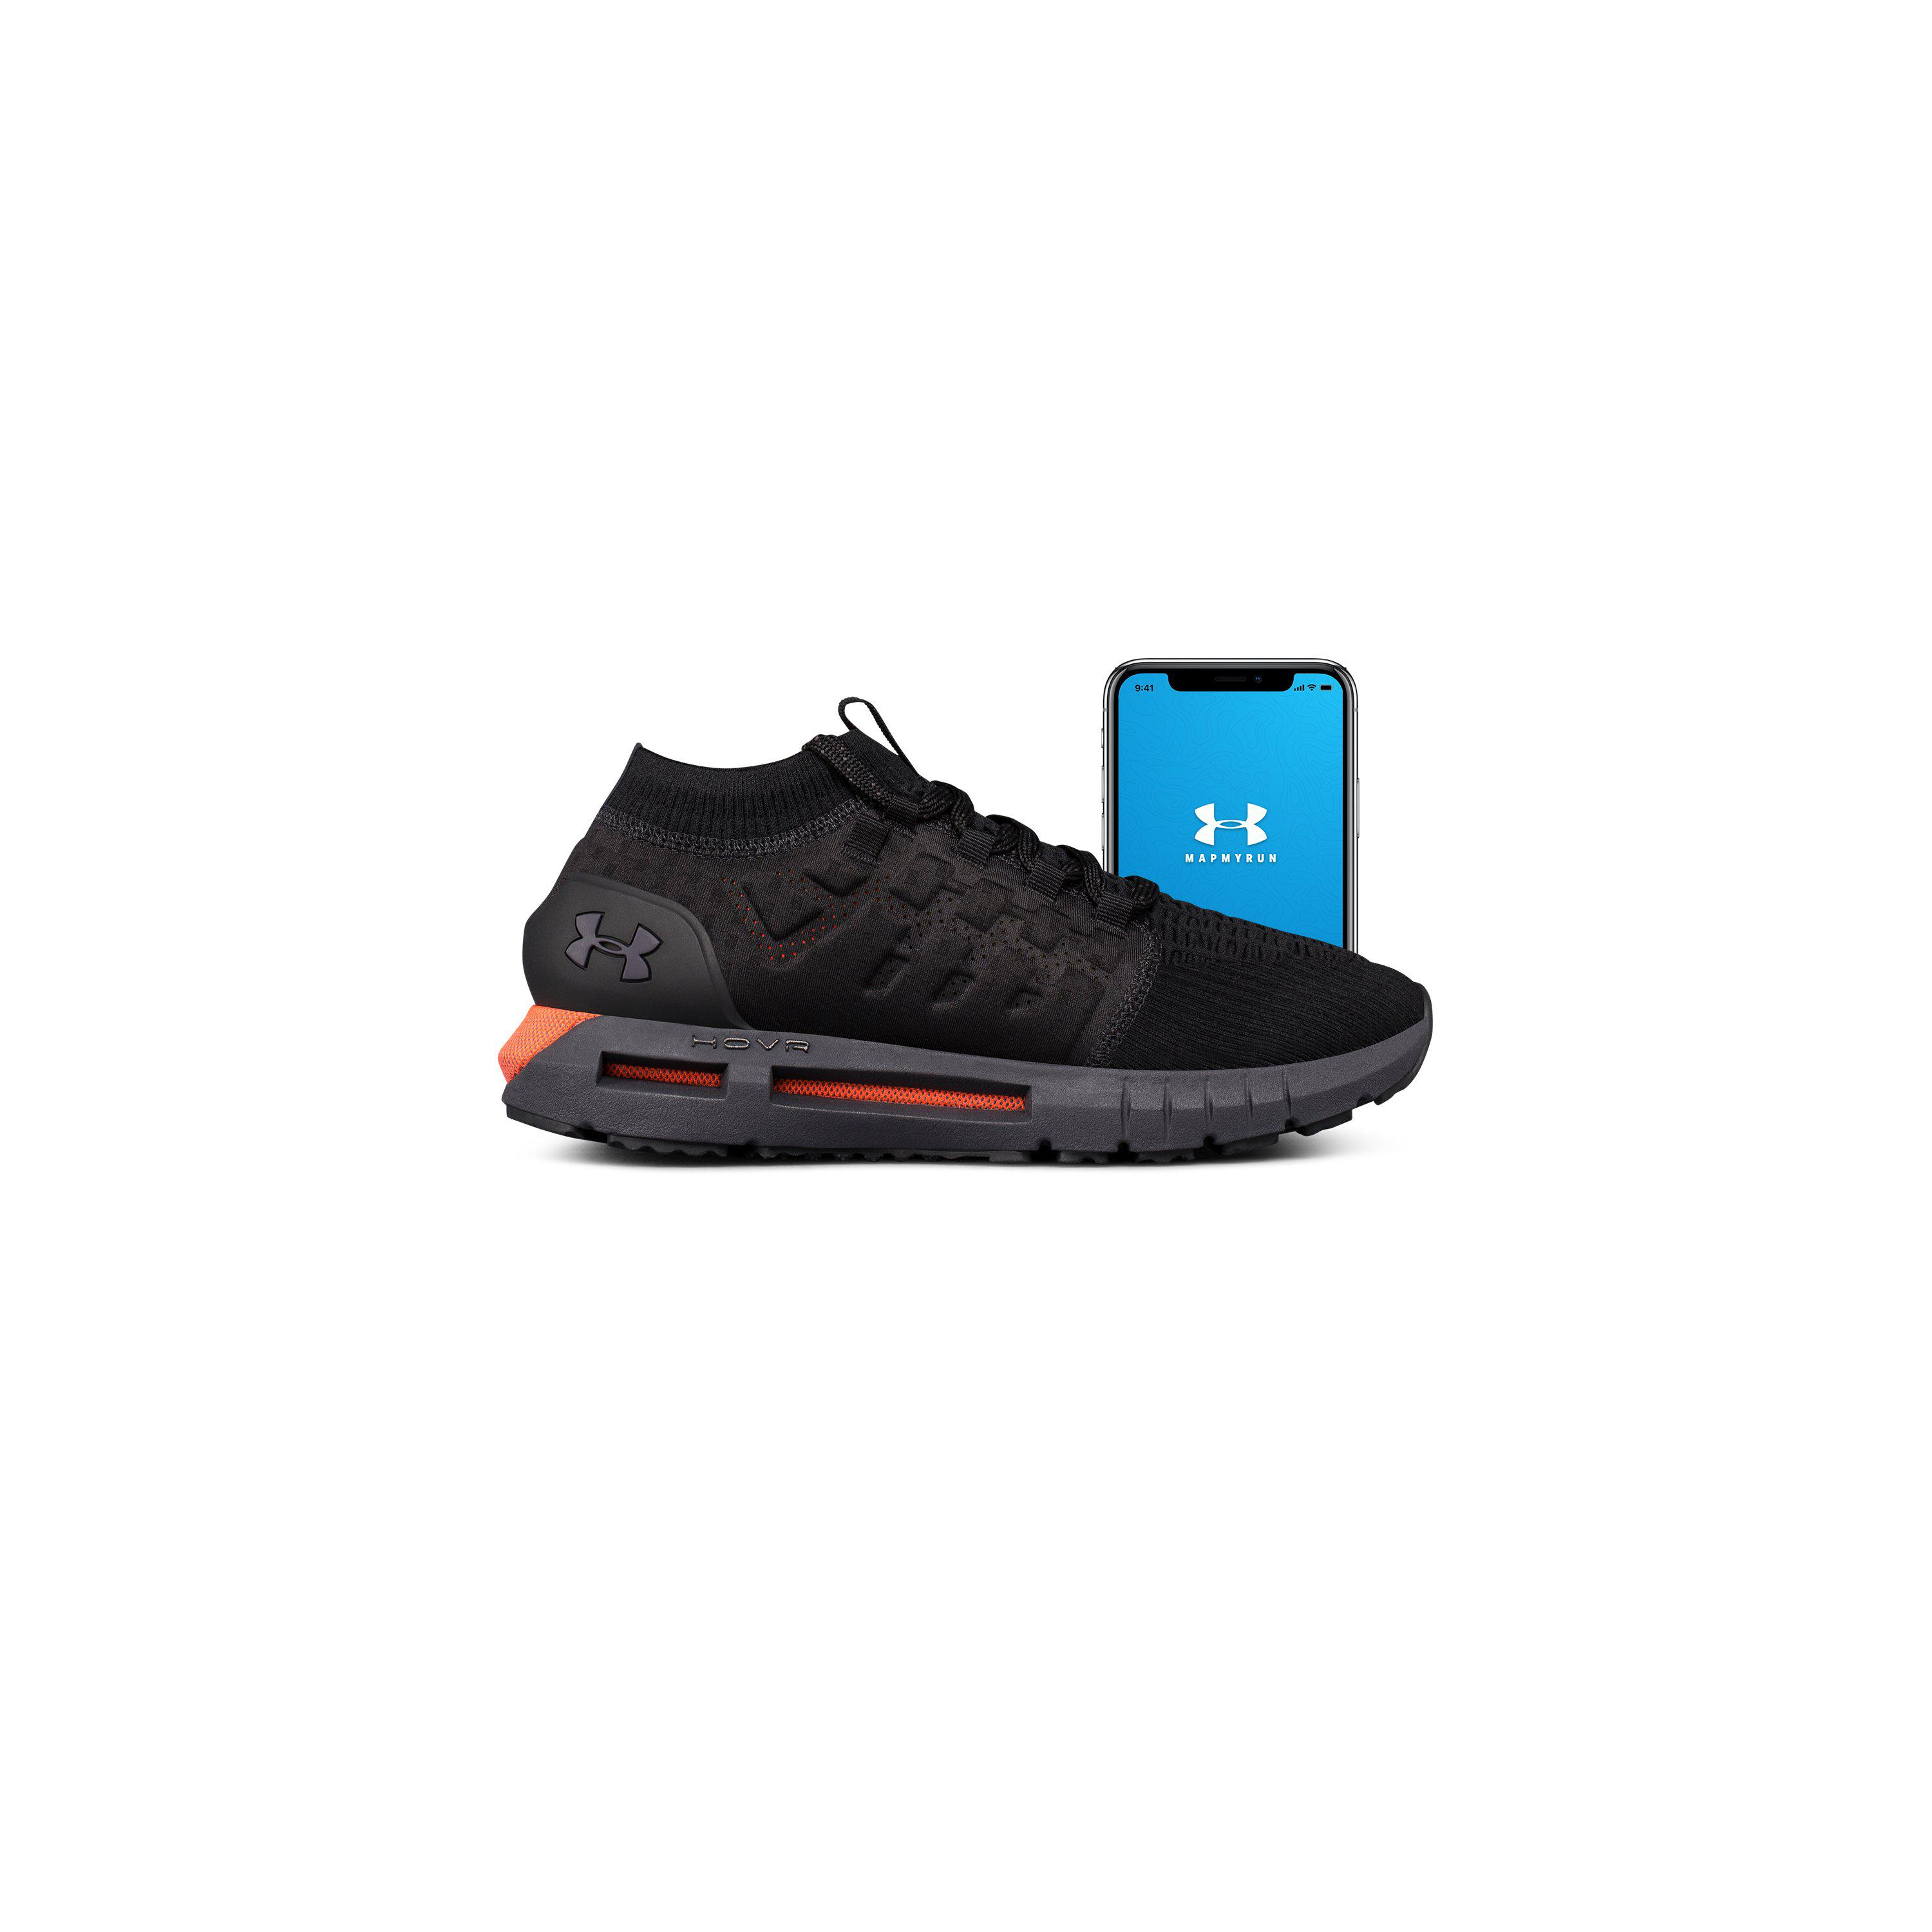 best website 1db37 b0eb0 Black Men's Ua Hovr Phantom Connected Running Shoes